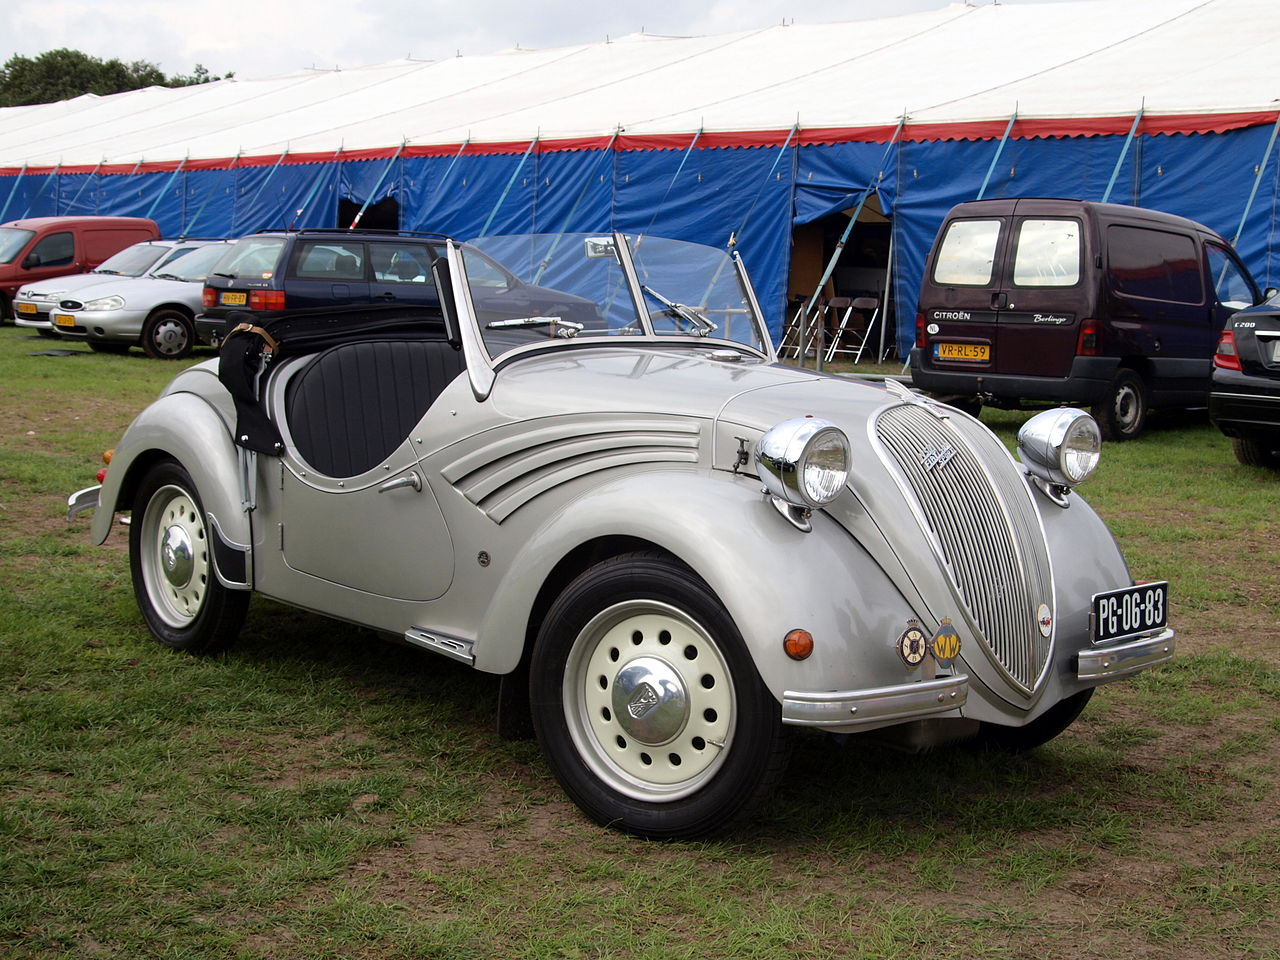 file 1940 fiat 500 topolino dutch licence registration pg 06 83 p4 jpg wikimedia commons. Black Bedroom Furniture Sets. Home Design Ideas